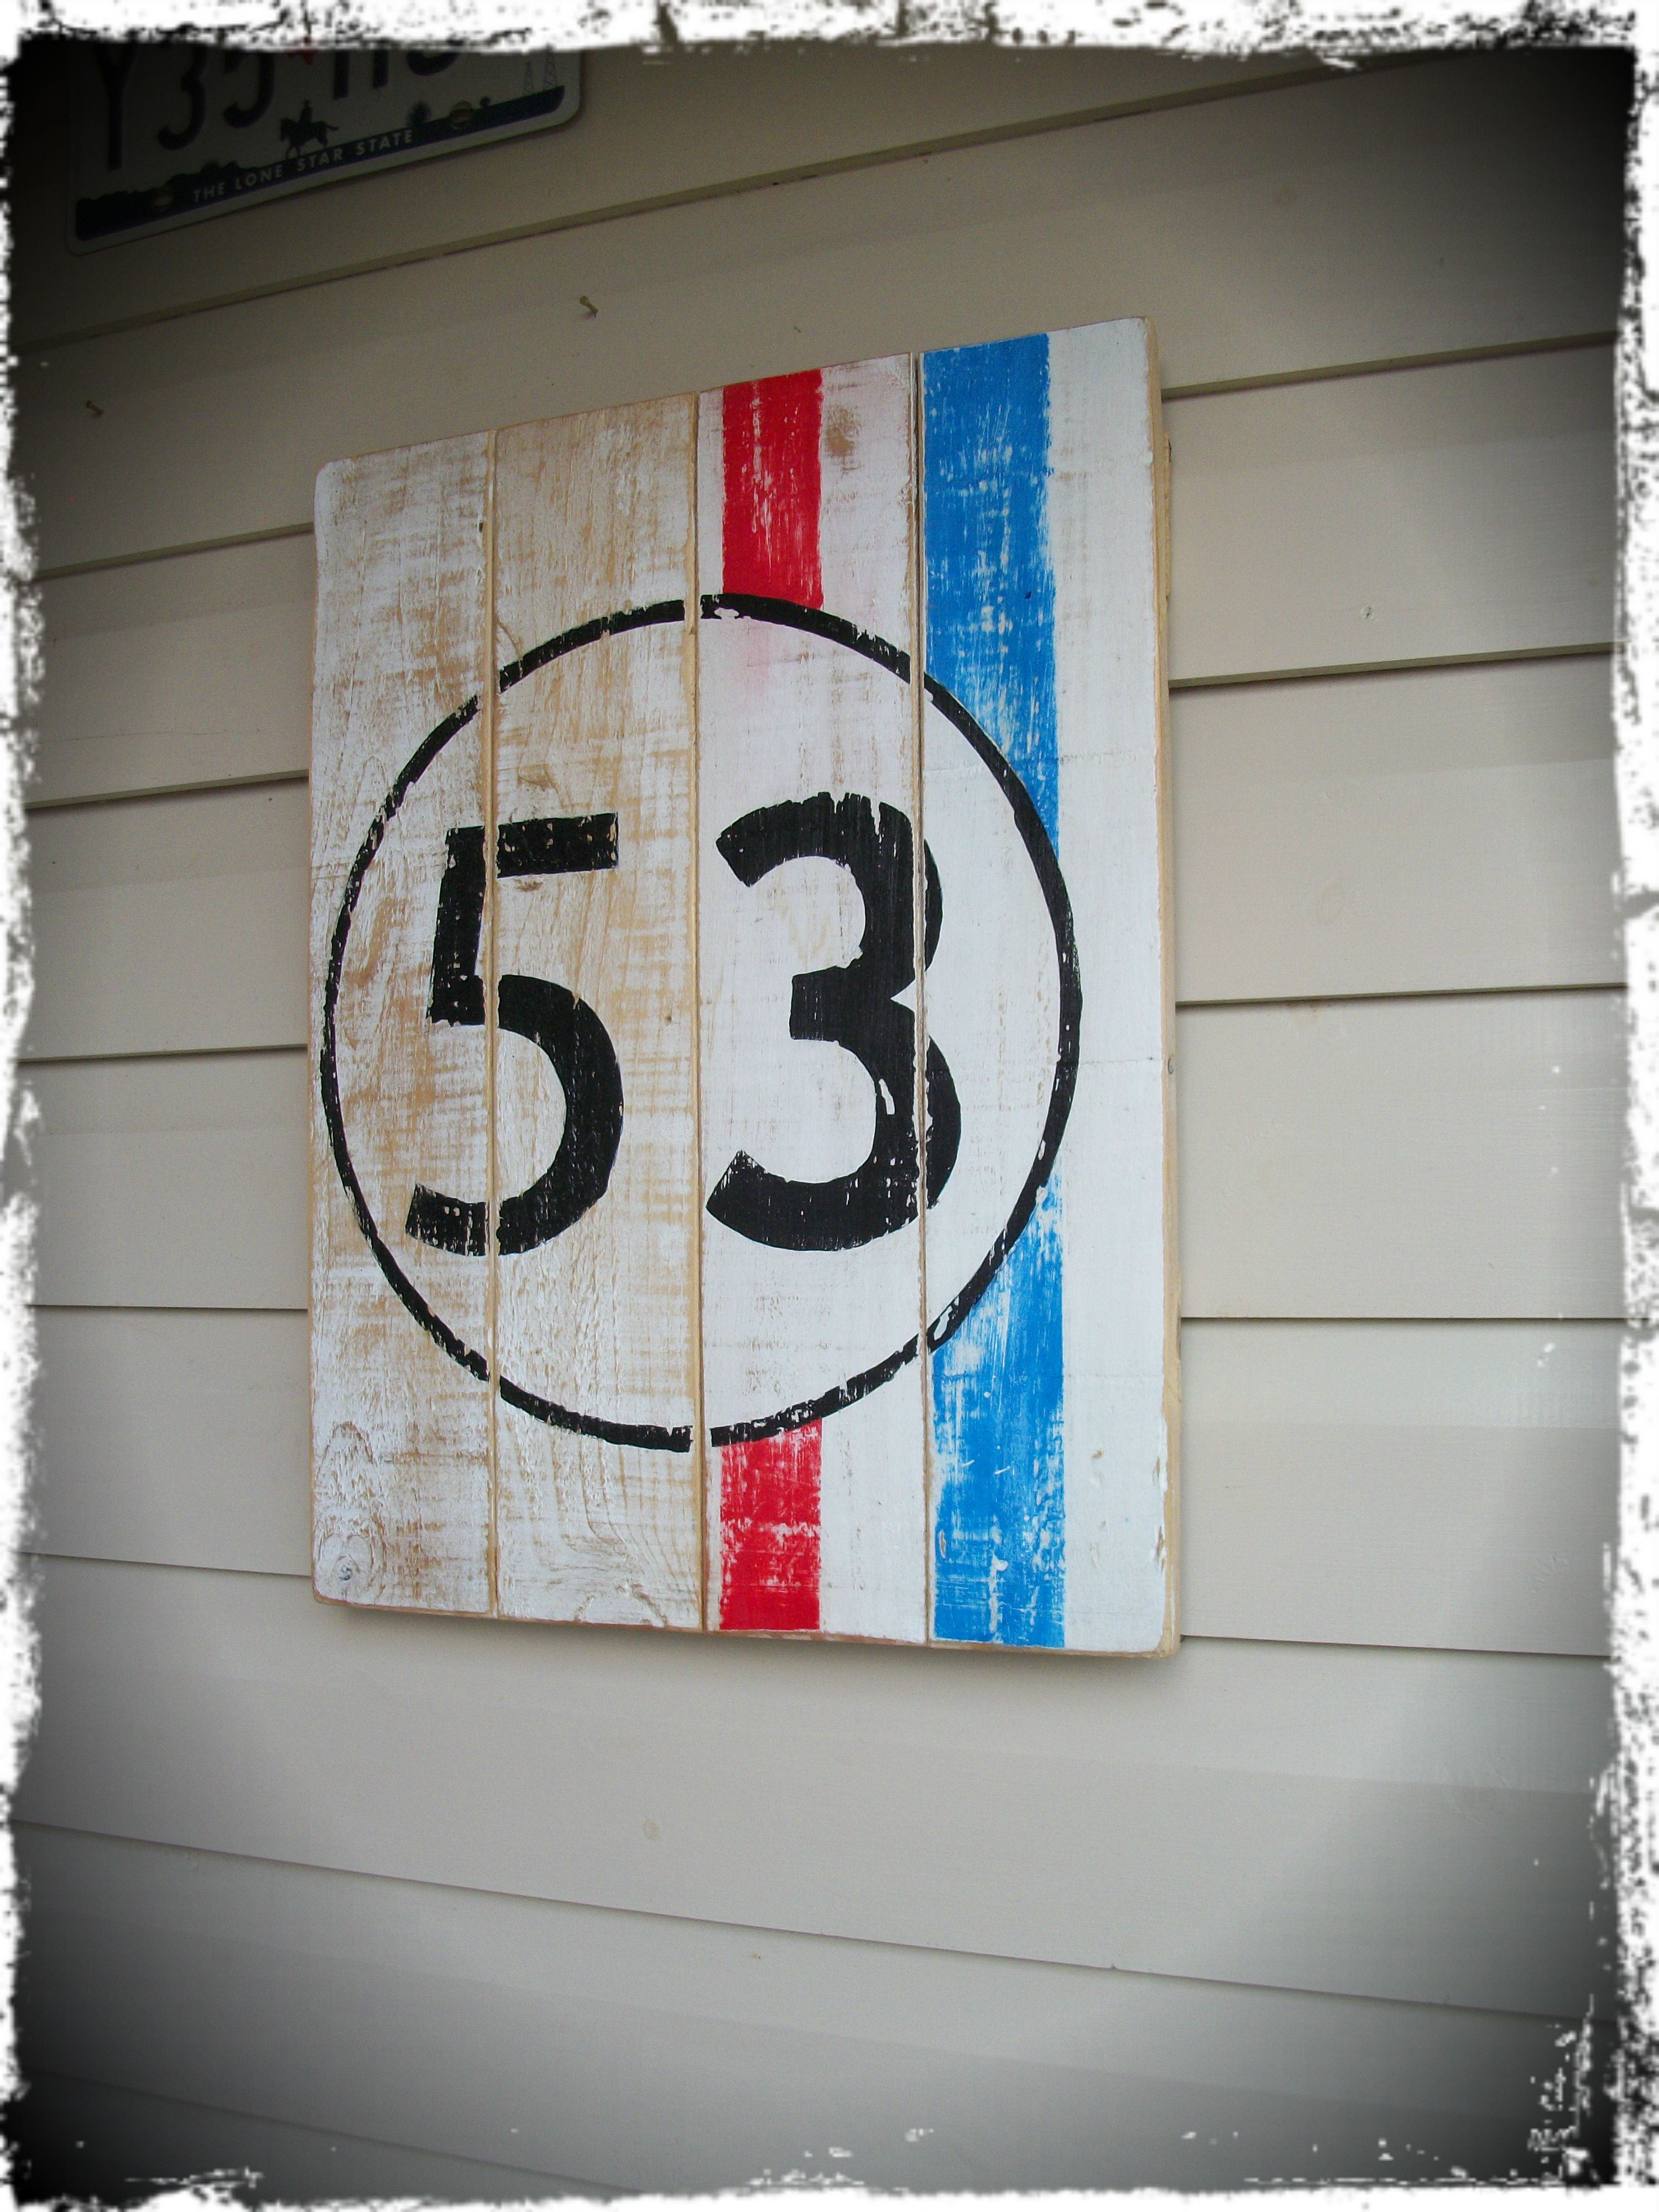 herbie wooden wall art 38 5cm x 51cm hand sign written contact me if